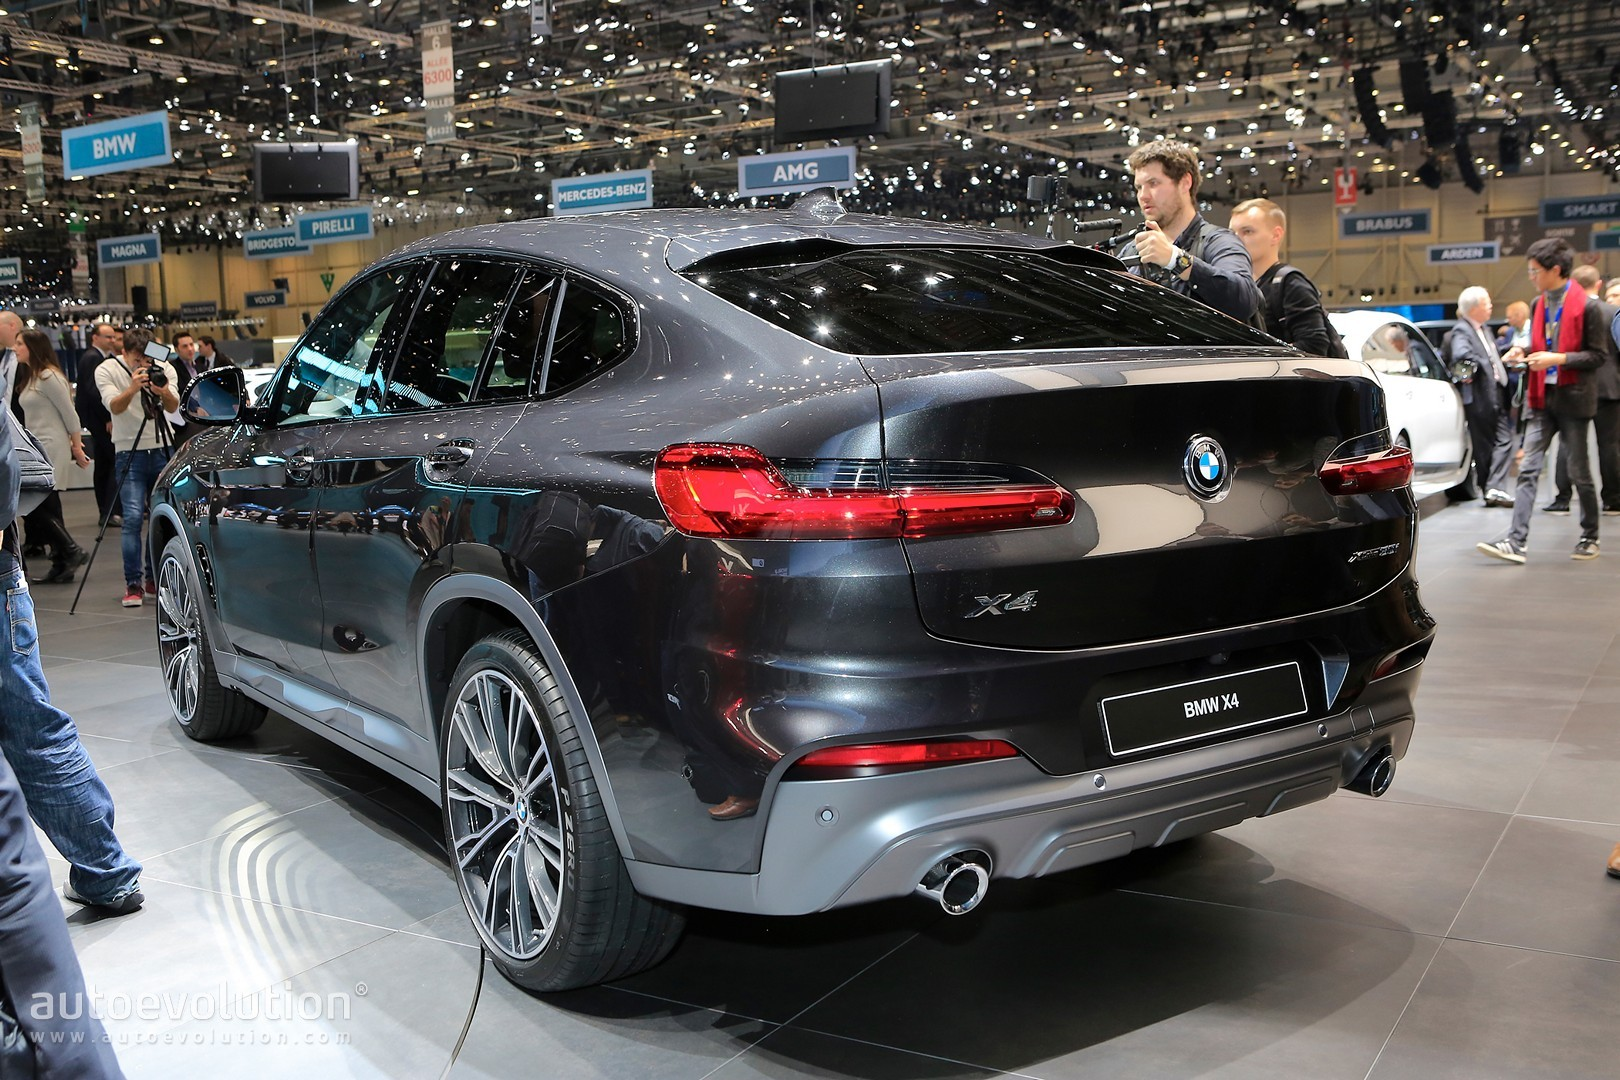 2019 bmw x4 uk review says it drives better than glc coupe. Black Bedroom Furniture Sets. Home Design Ideas